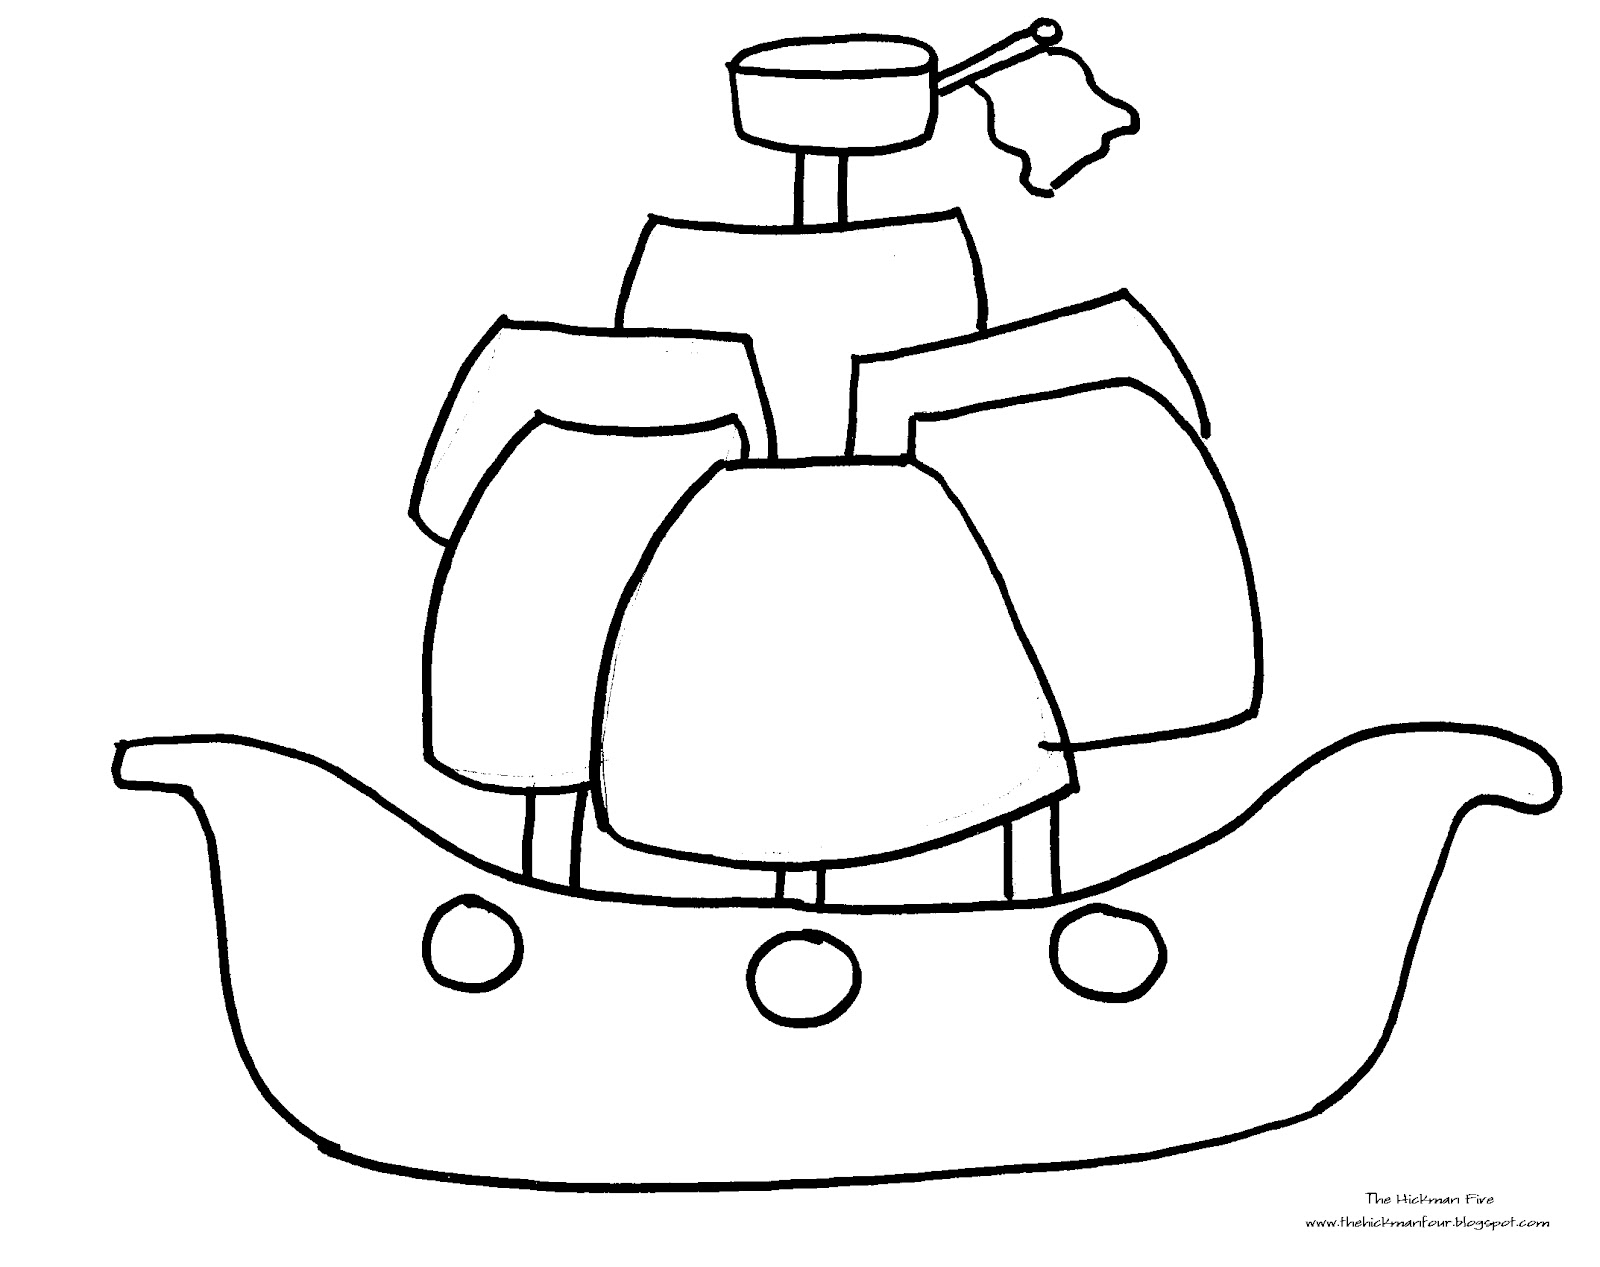 Pirate Ship Outline | Free download on ClipArtMag